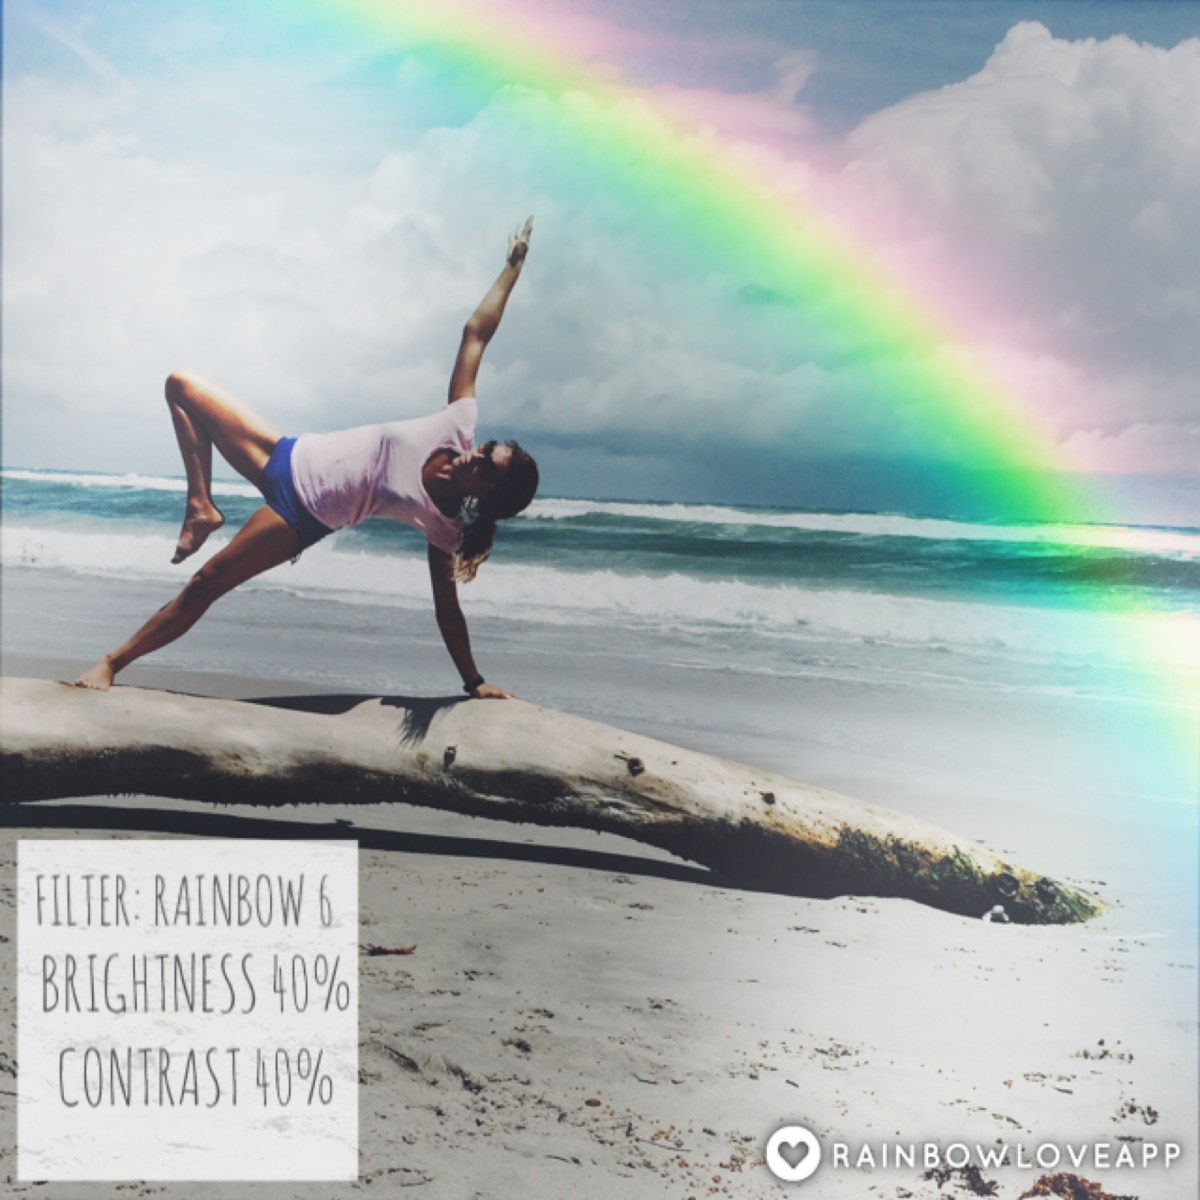 rainbow-love-app-photo-filter-filters-rainbows-for-yoga-photos-2